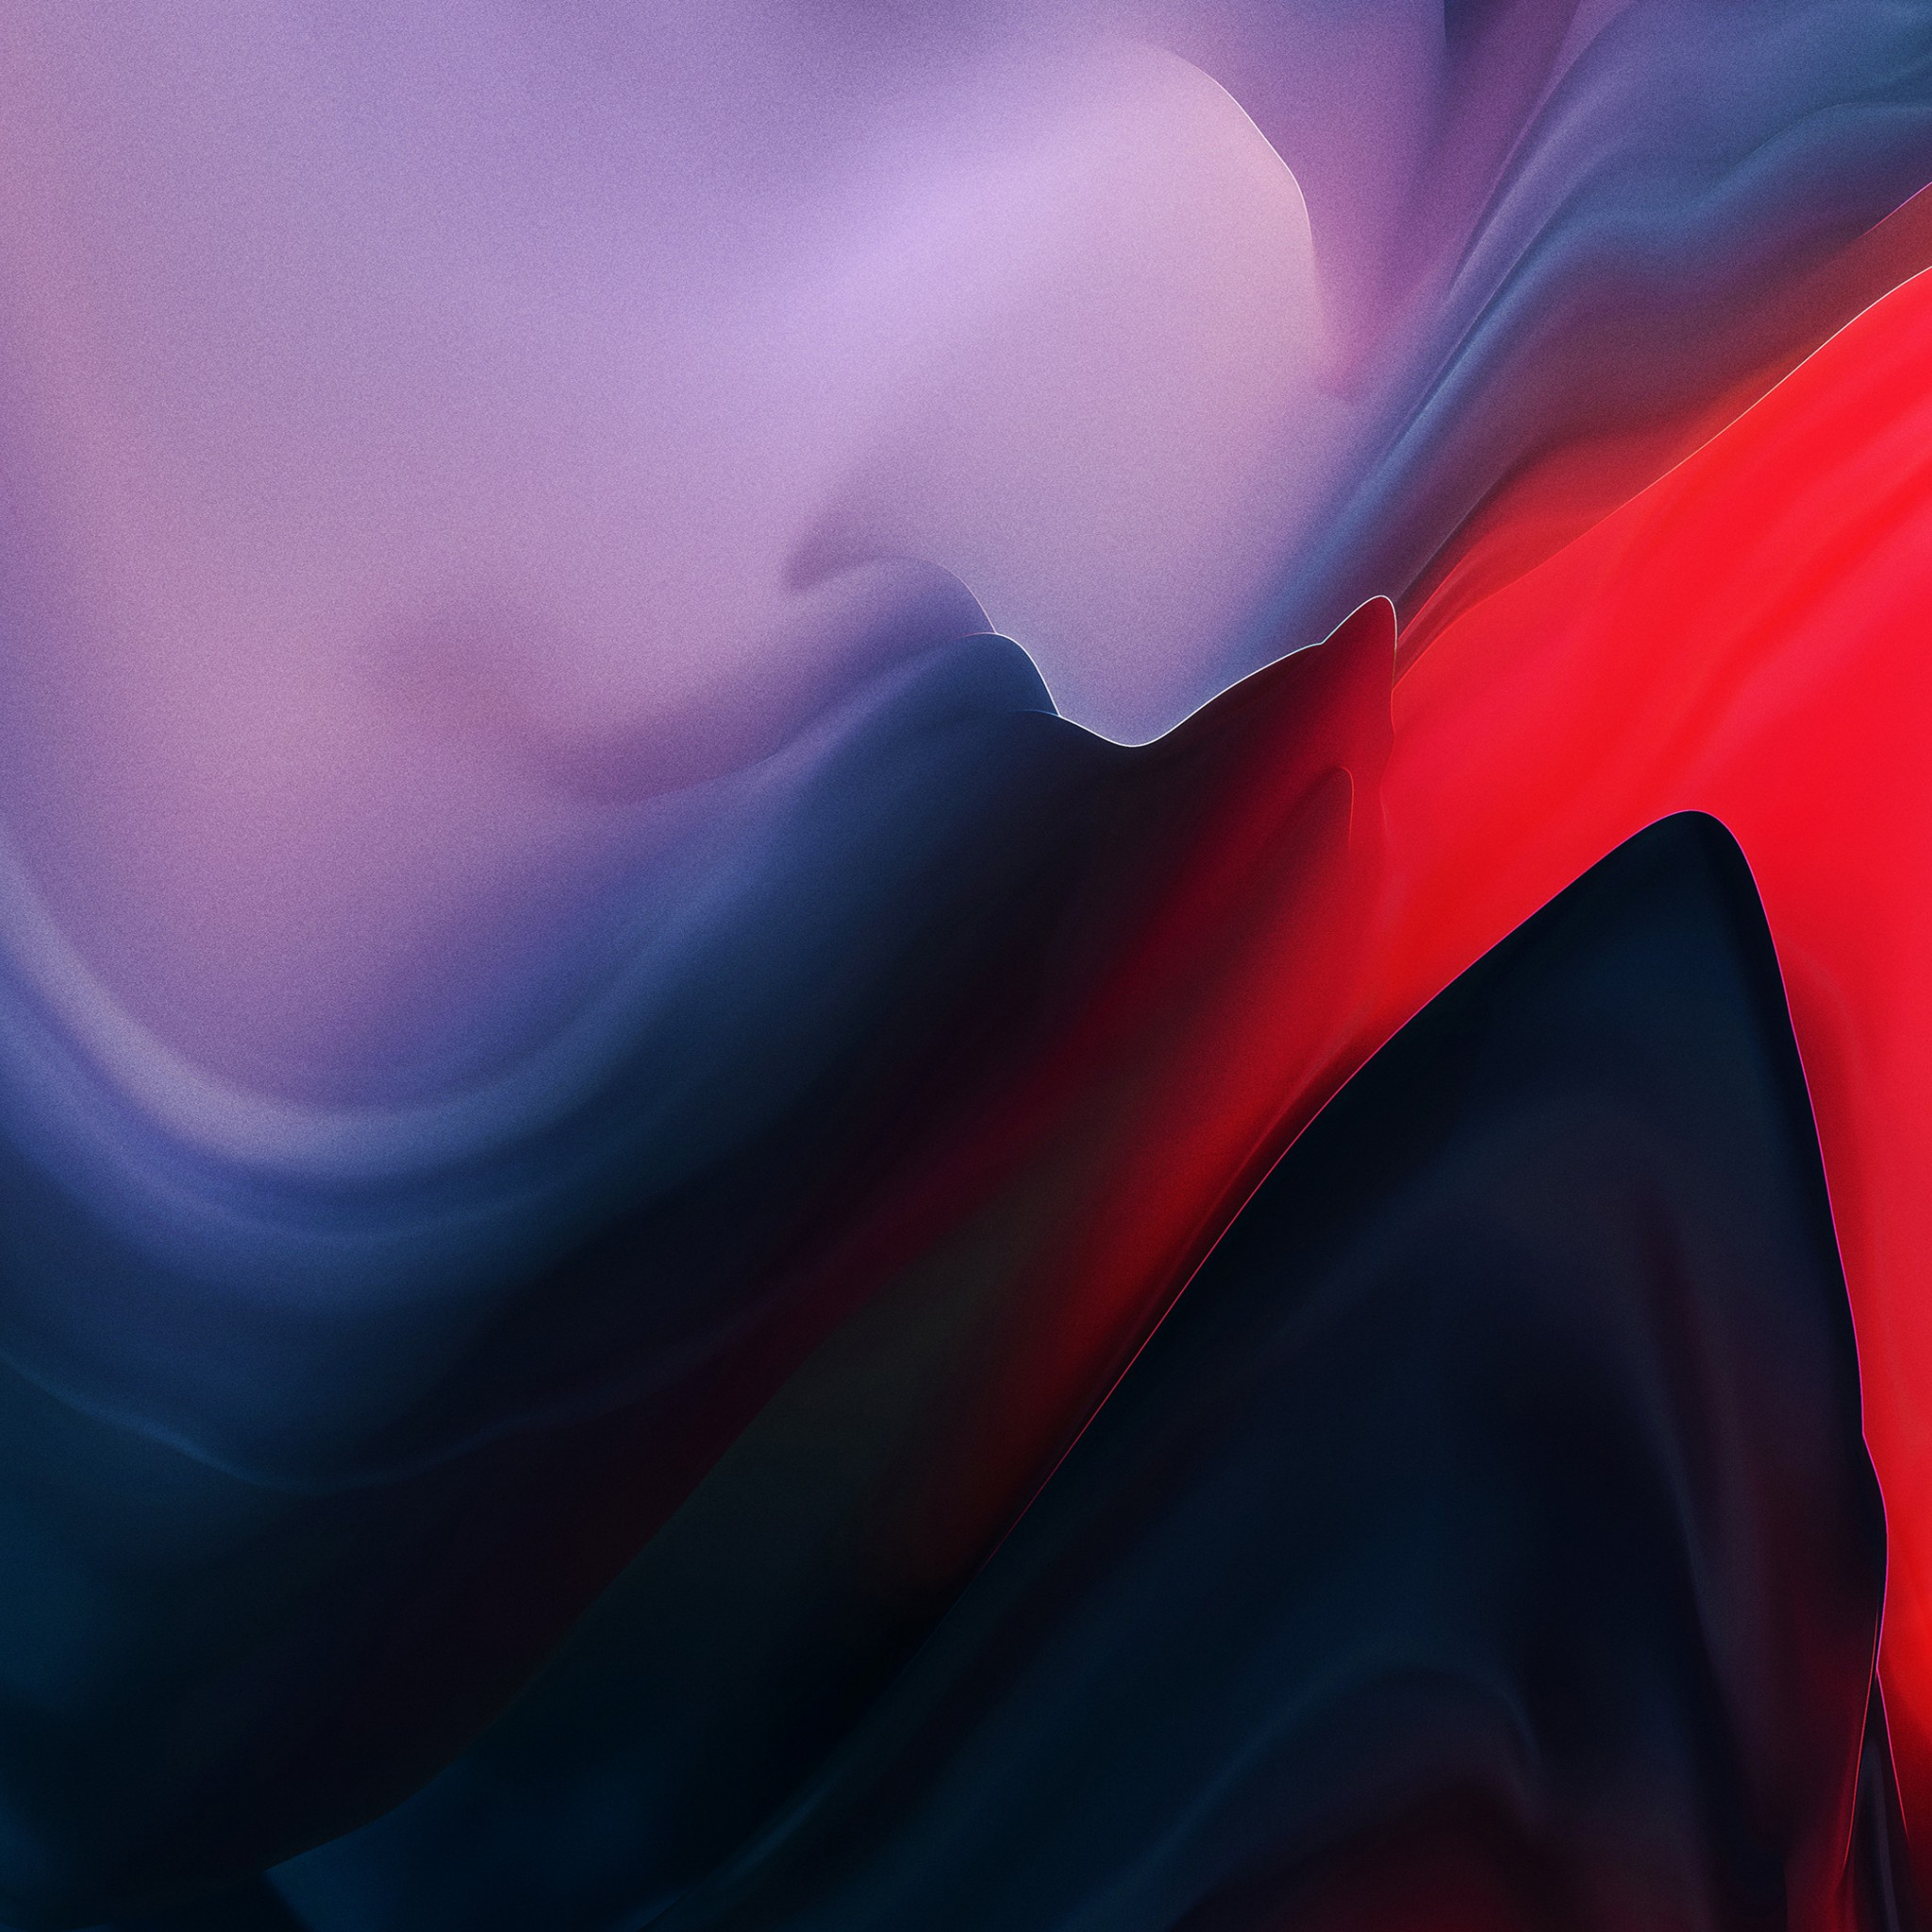 Download Wallpaper: The Abstract From OnePlus 6T 2048x2048